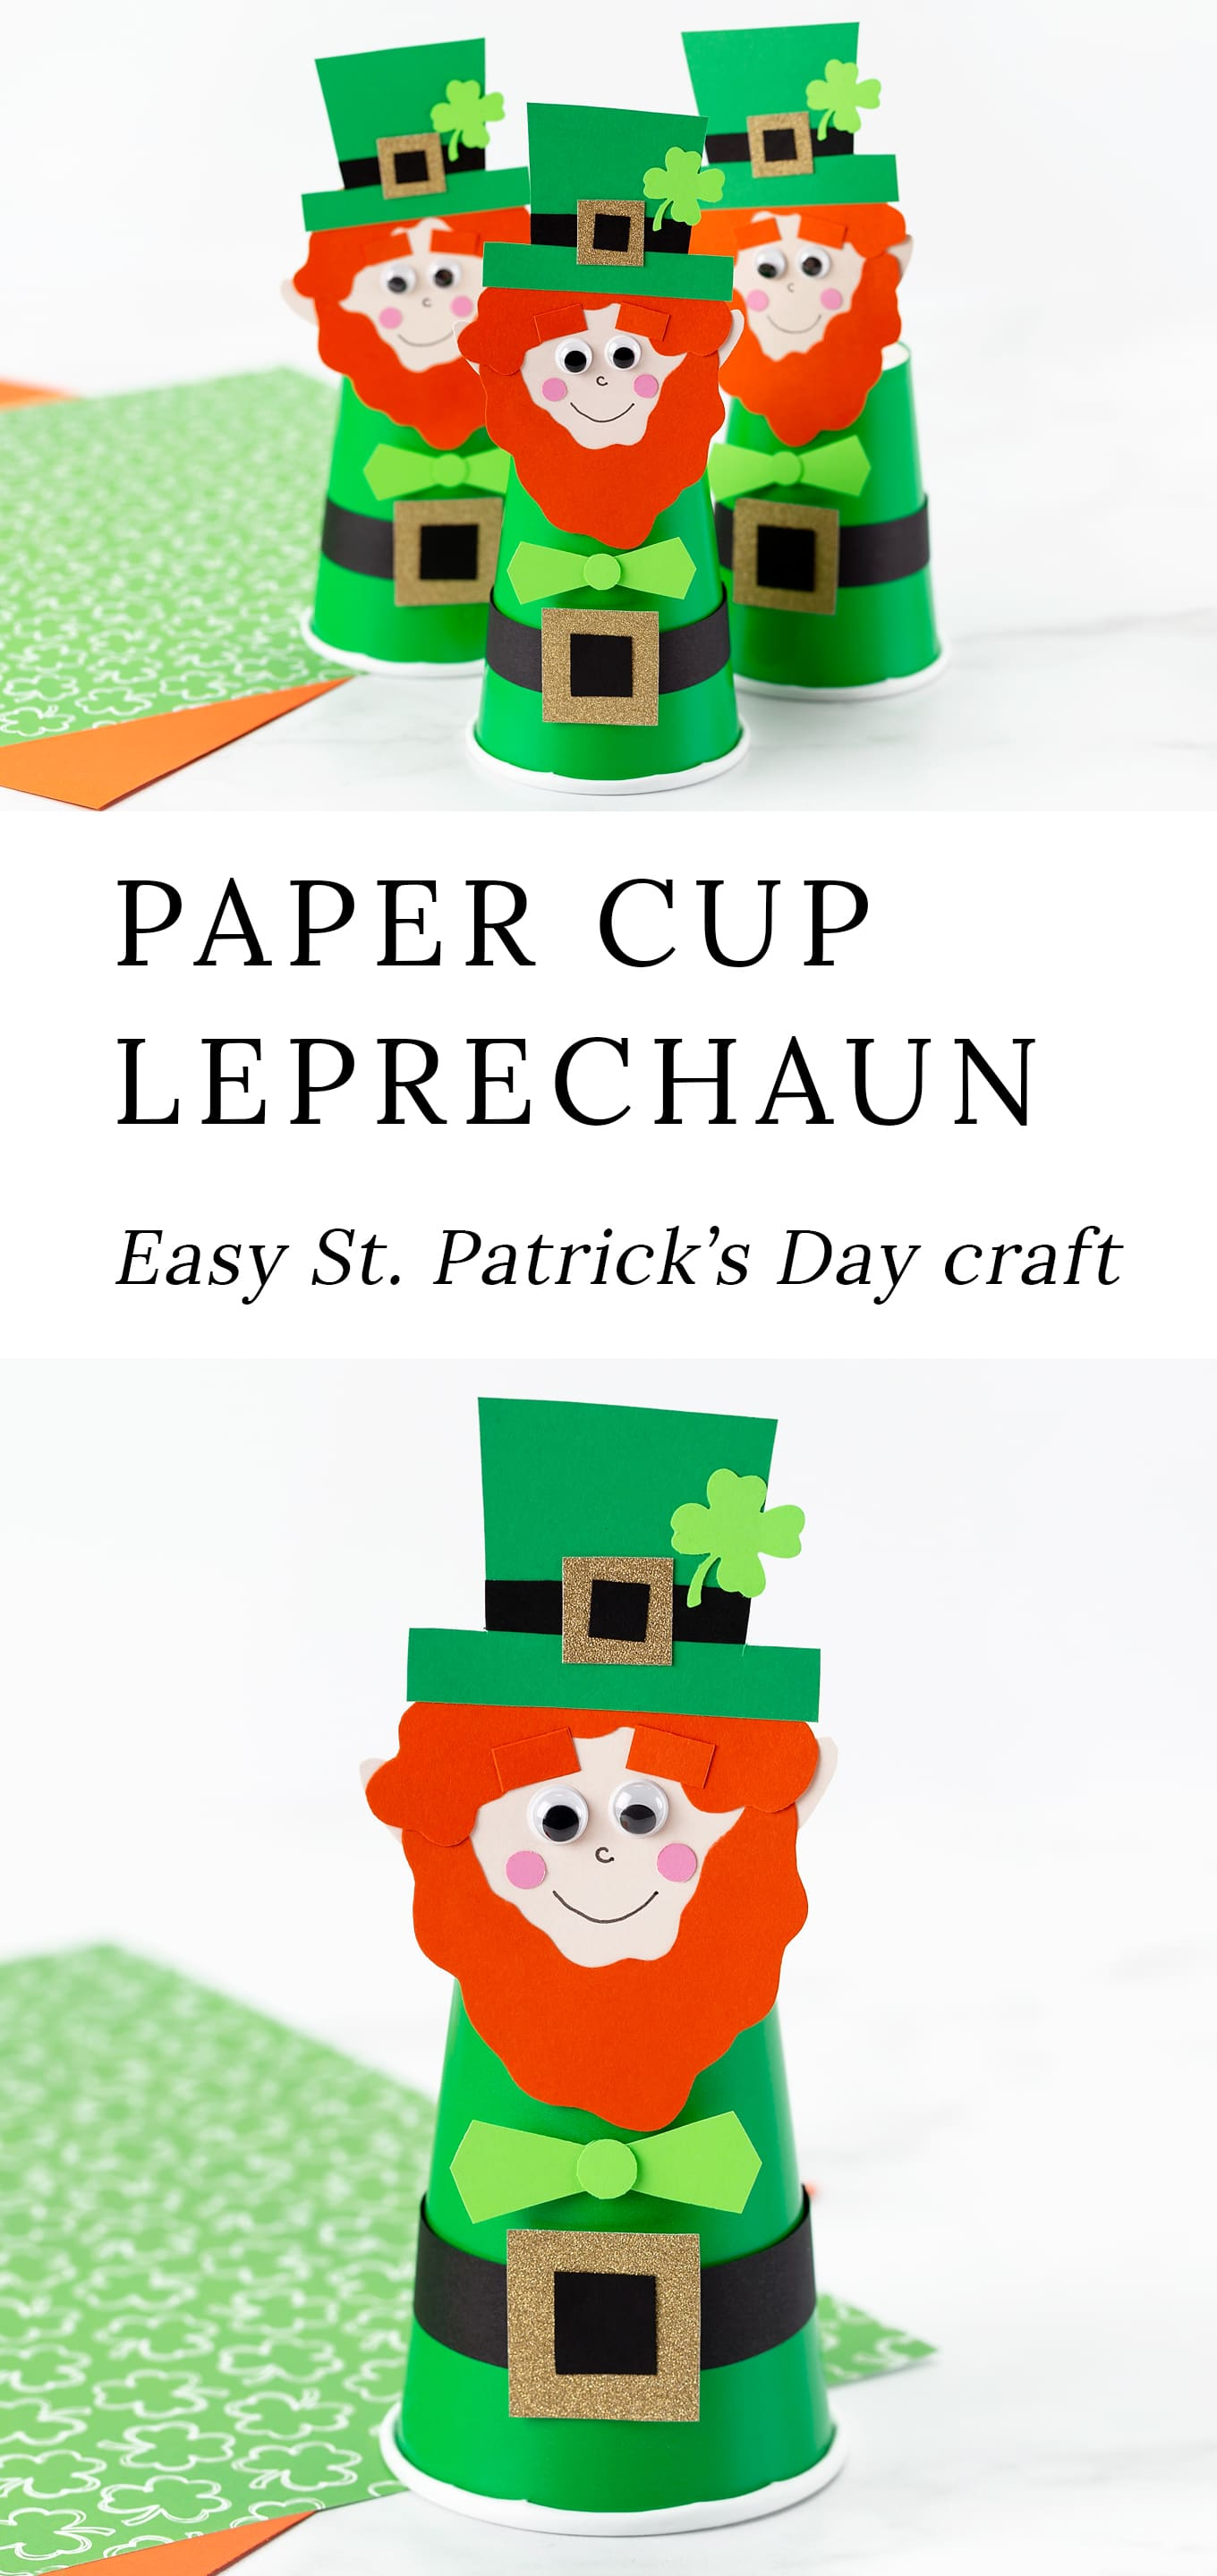 Making your ownPaper Cup Leprechaun is easy and fun! This cute DIY St. Patrick's Day craft is perfect for kids of all ages, especially preschoolers. It's inexpensive, mess-free, and best of all, we are providing a free printable template to use at home or school. via @firefliesandmudpies